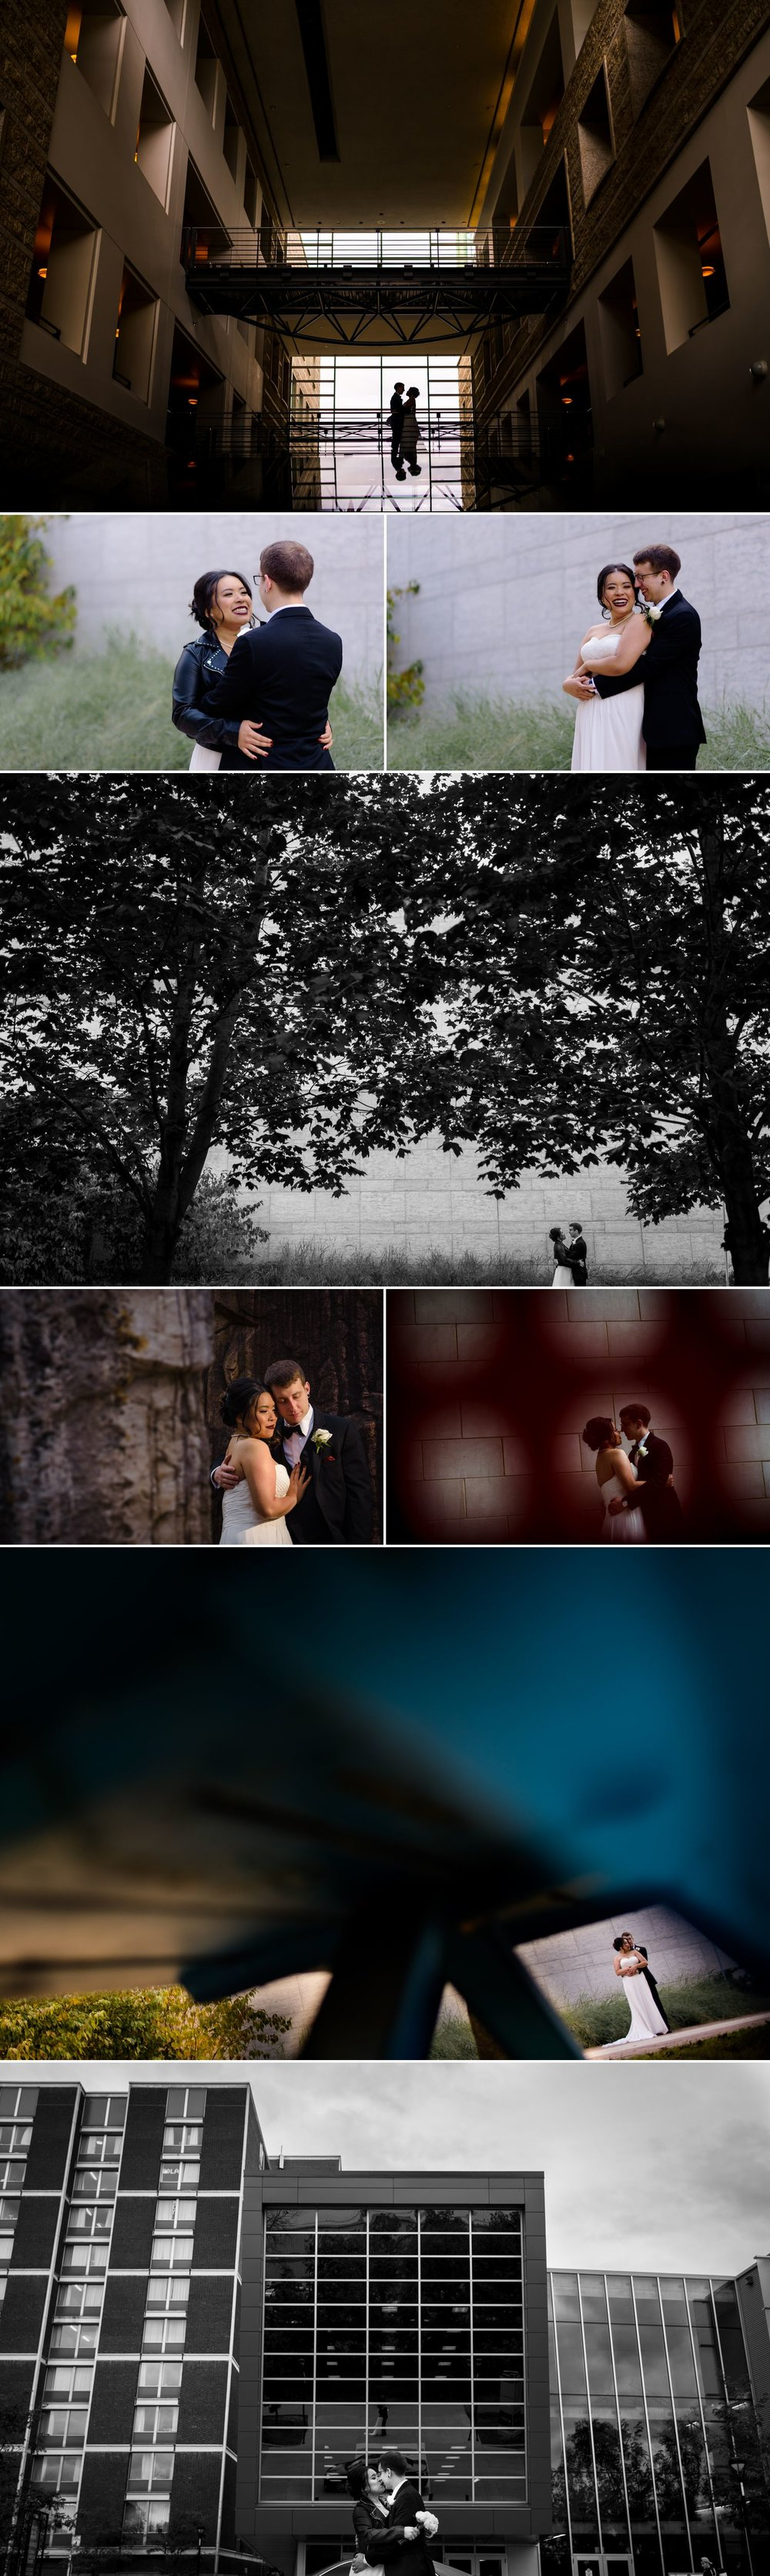 Amy + Taylor 5-briand-and-groom-couples-portraits-downtown-ottawa.jpg